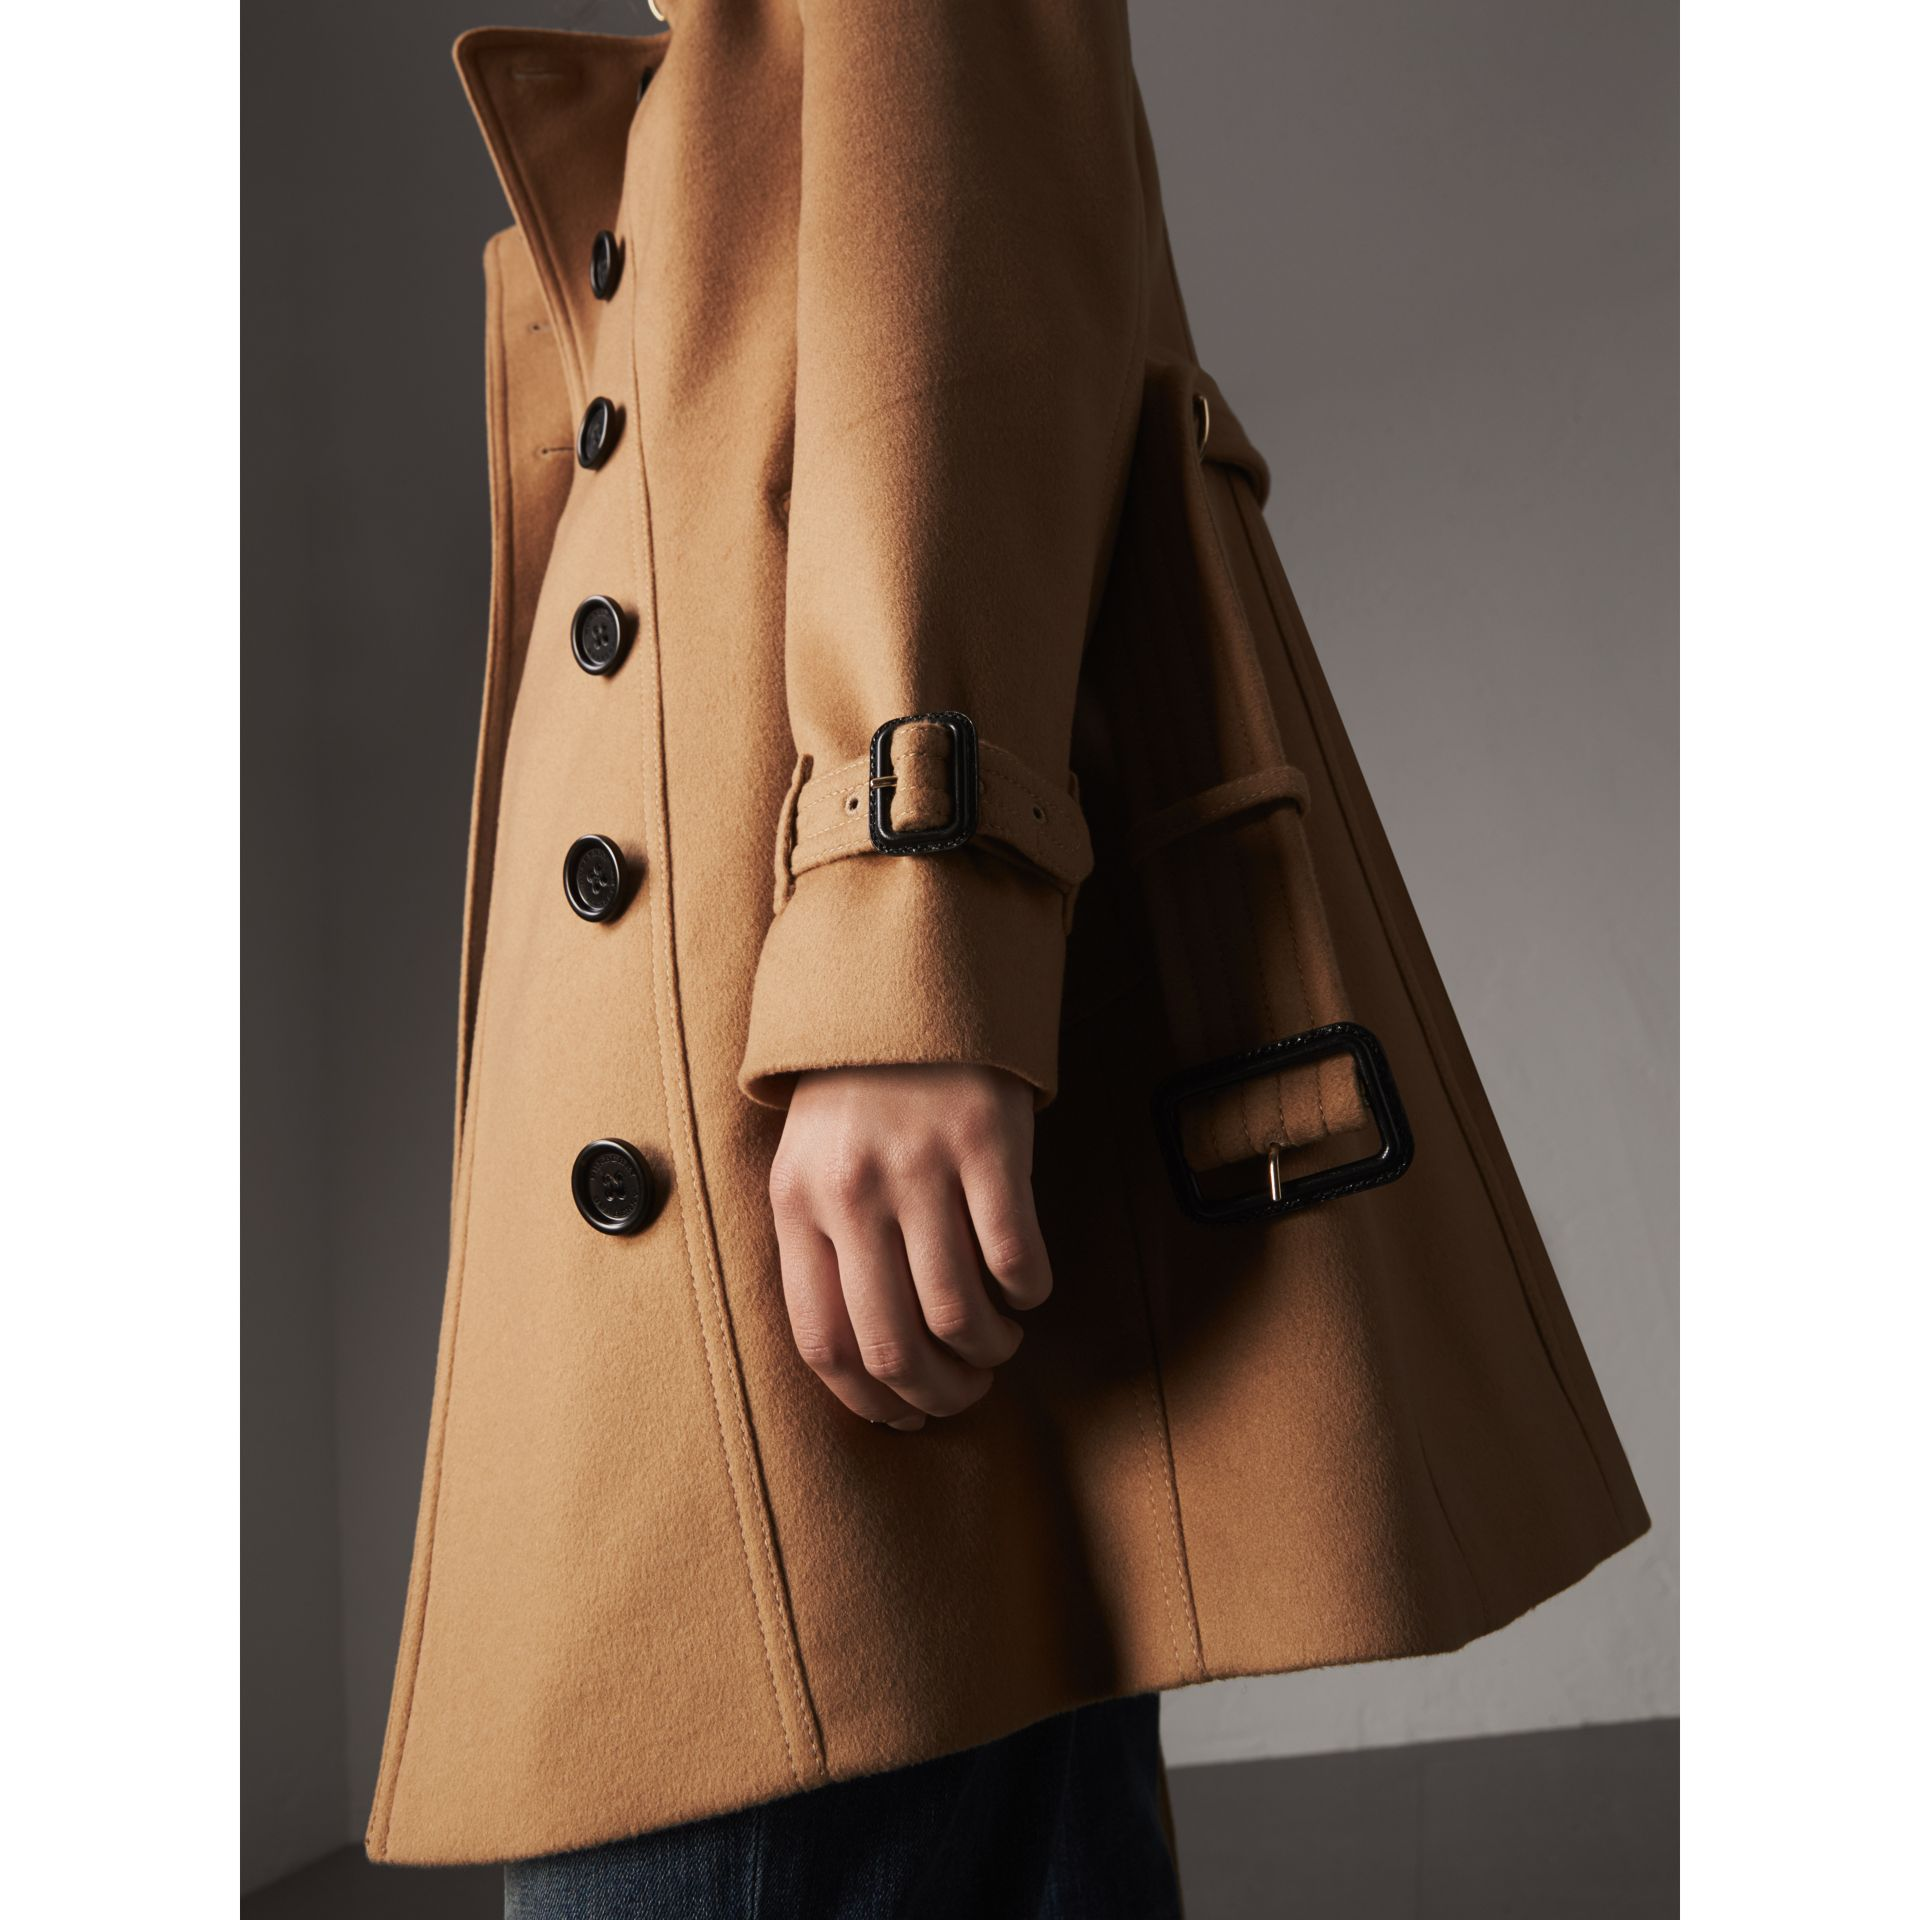 Wool Cashmere Trench Coat with Fur Collar in Camel - Women | Burberry United Kingdom - gallery image 1